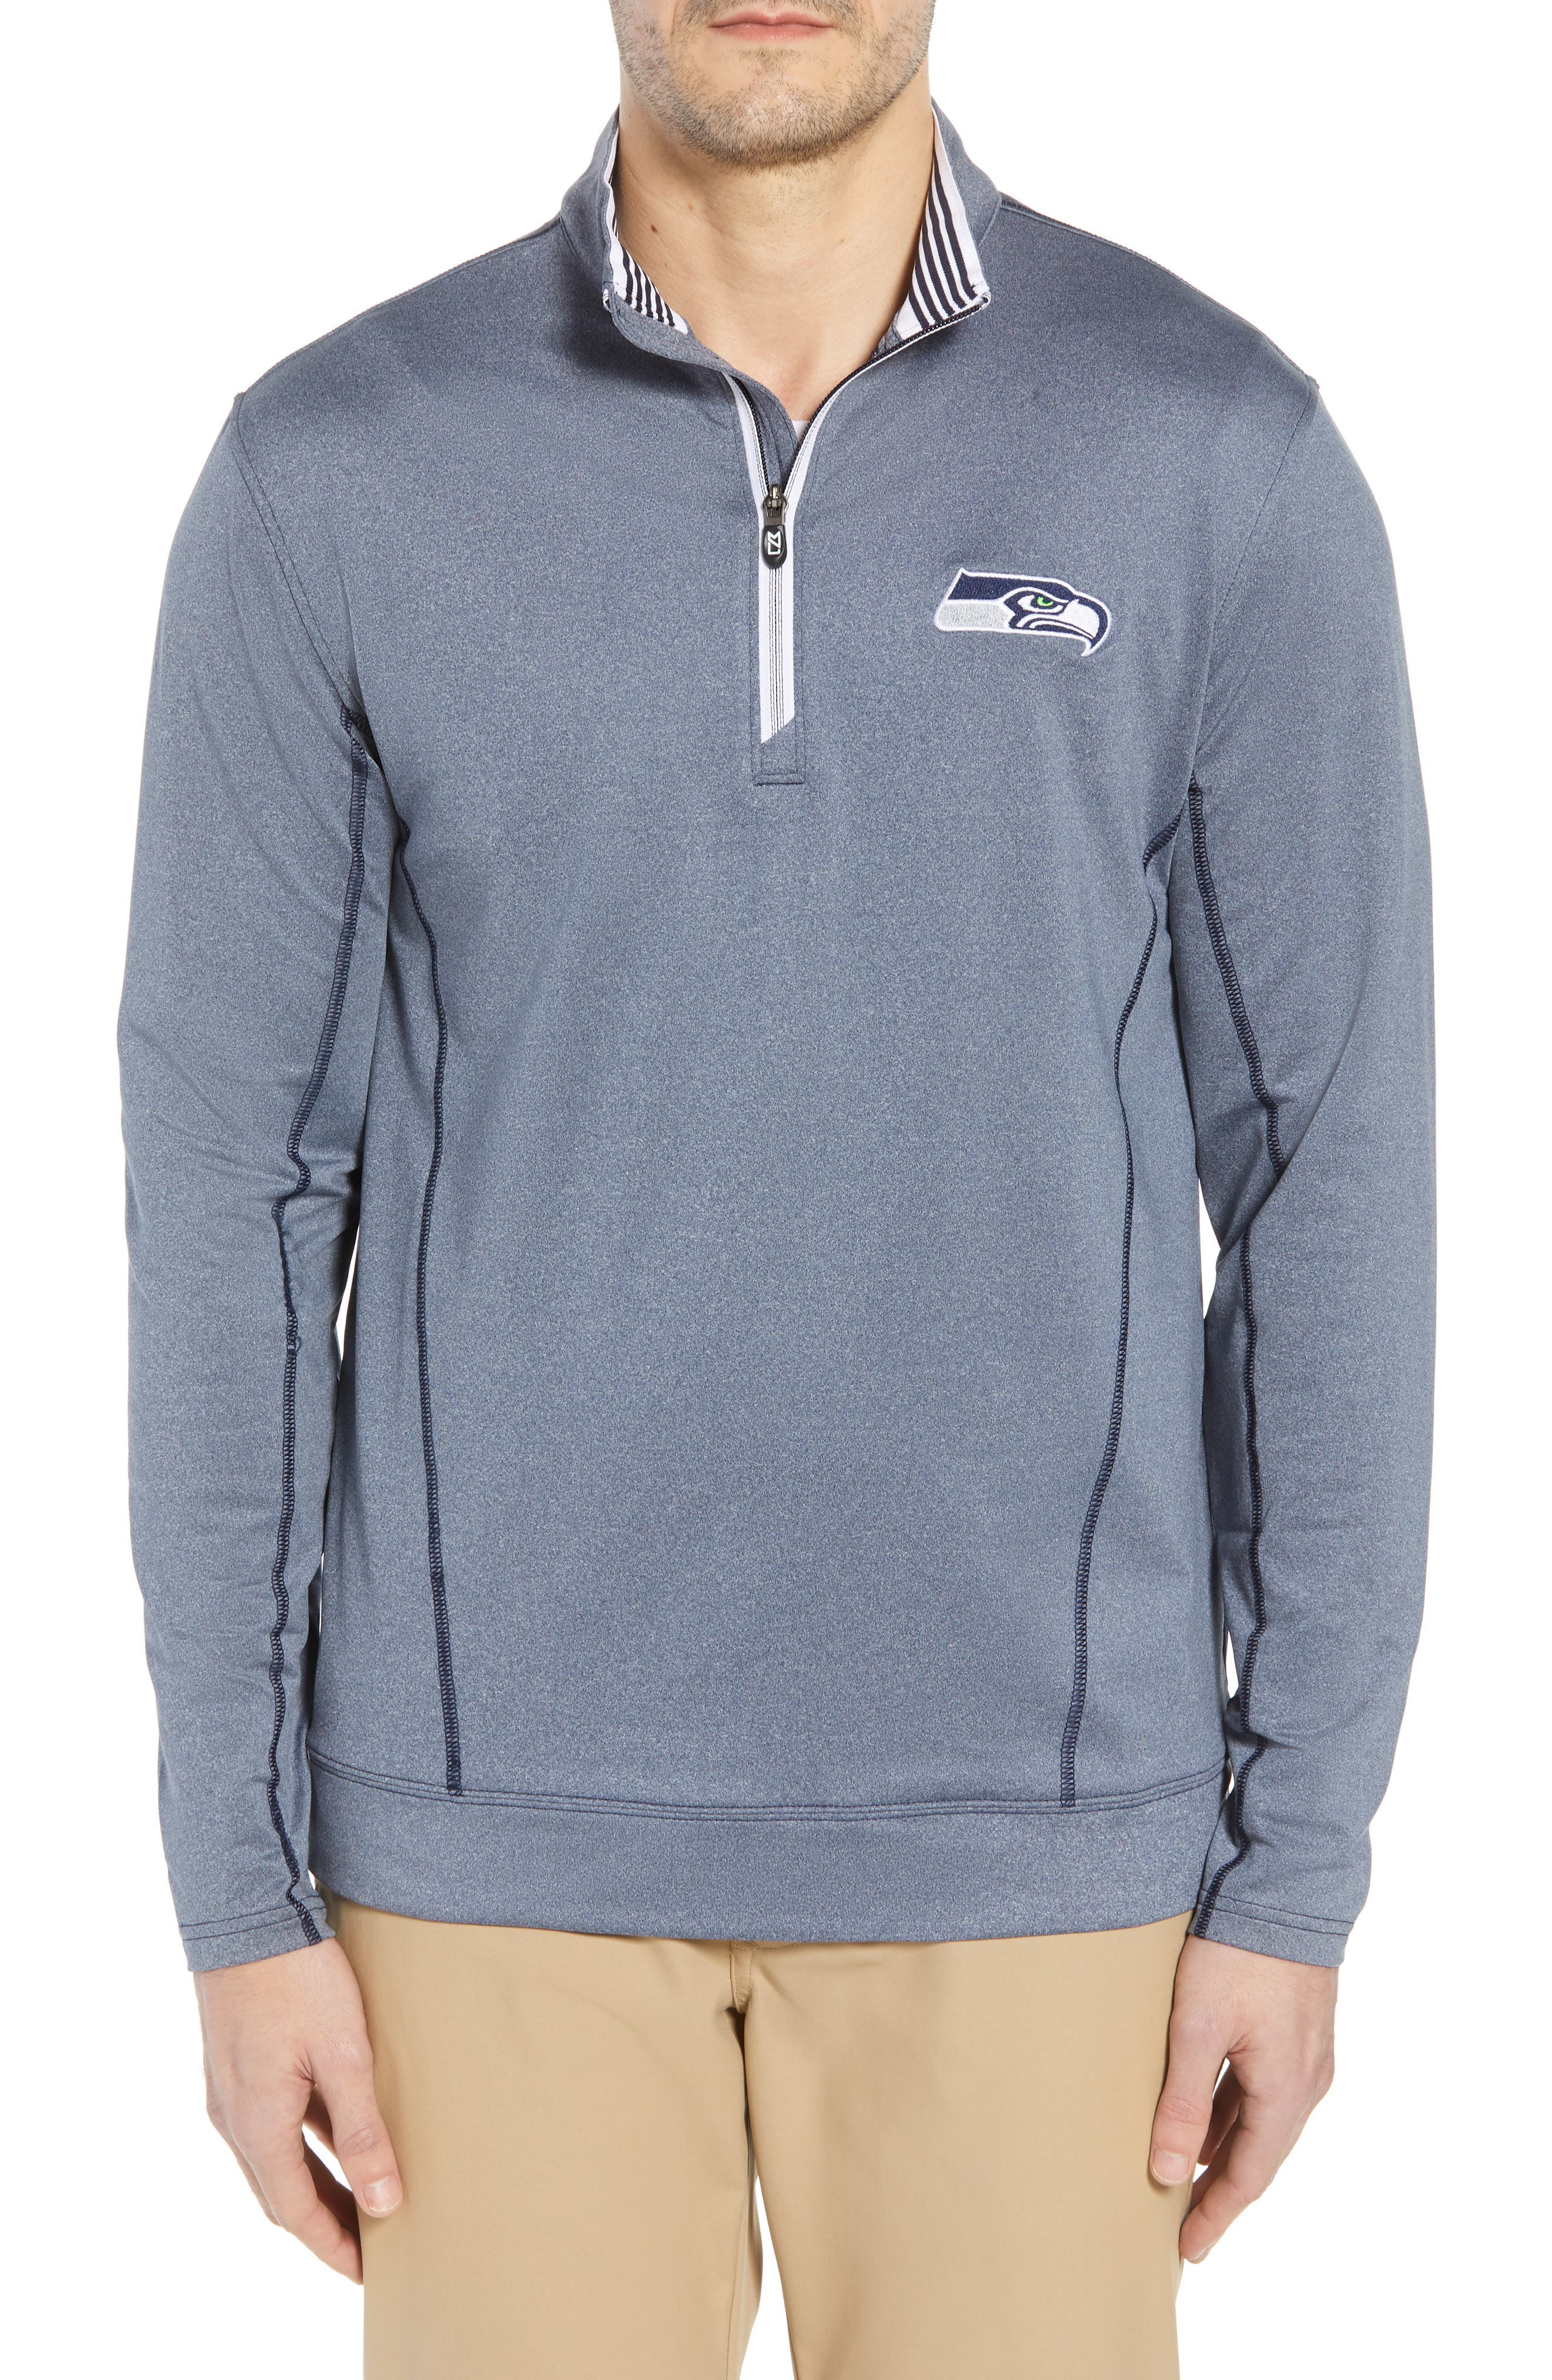 Endurance Seattle Seahawks Regular Fit Pullover,                             Main thumbnail 1, color,                             LIBERTY NAVY HEATHER